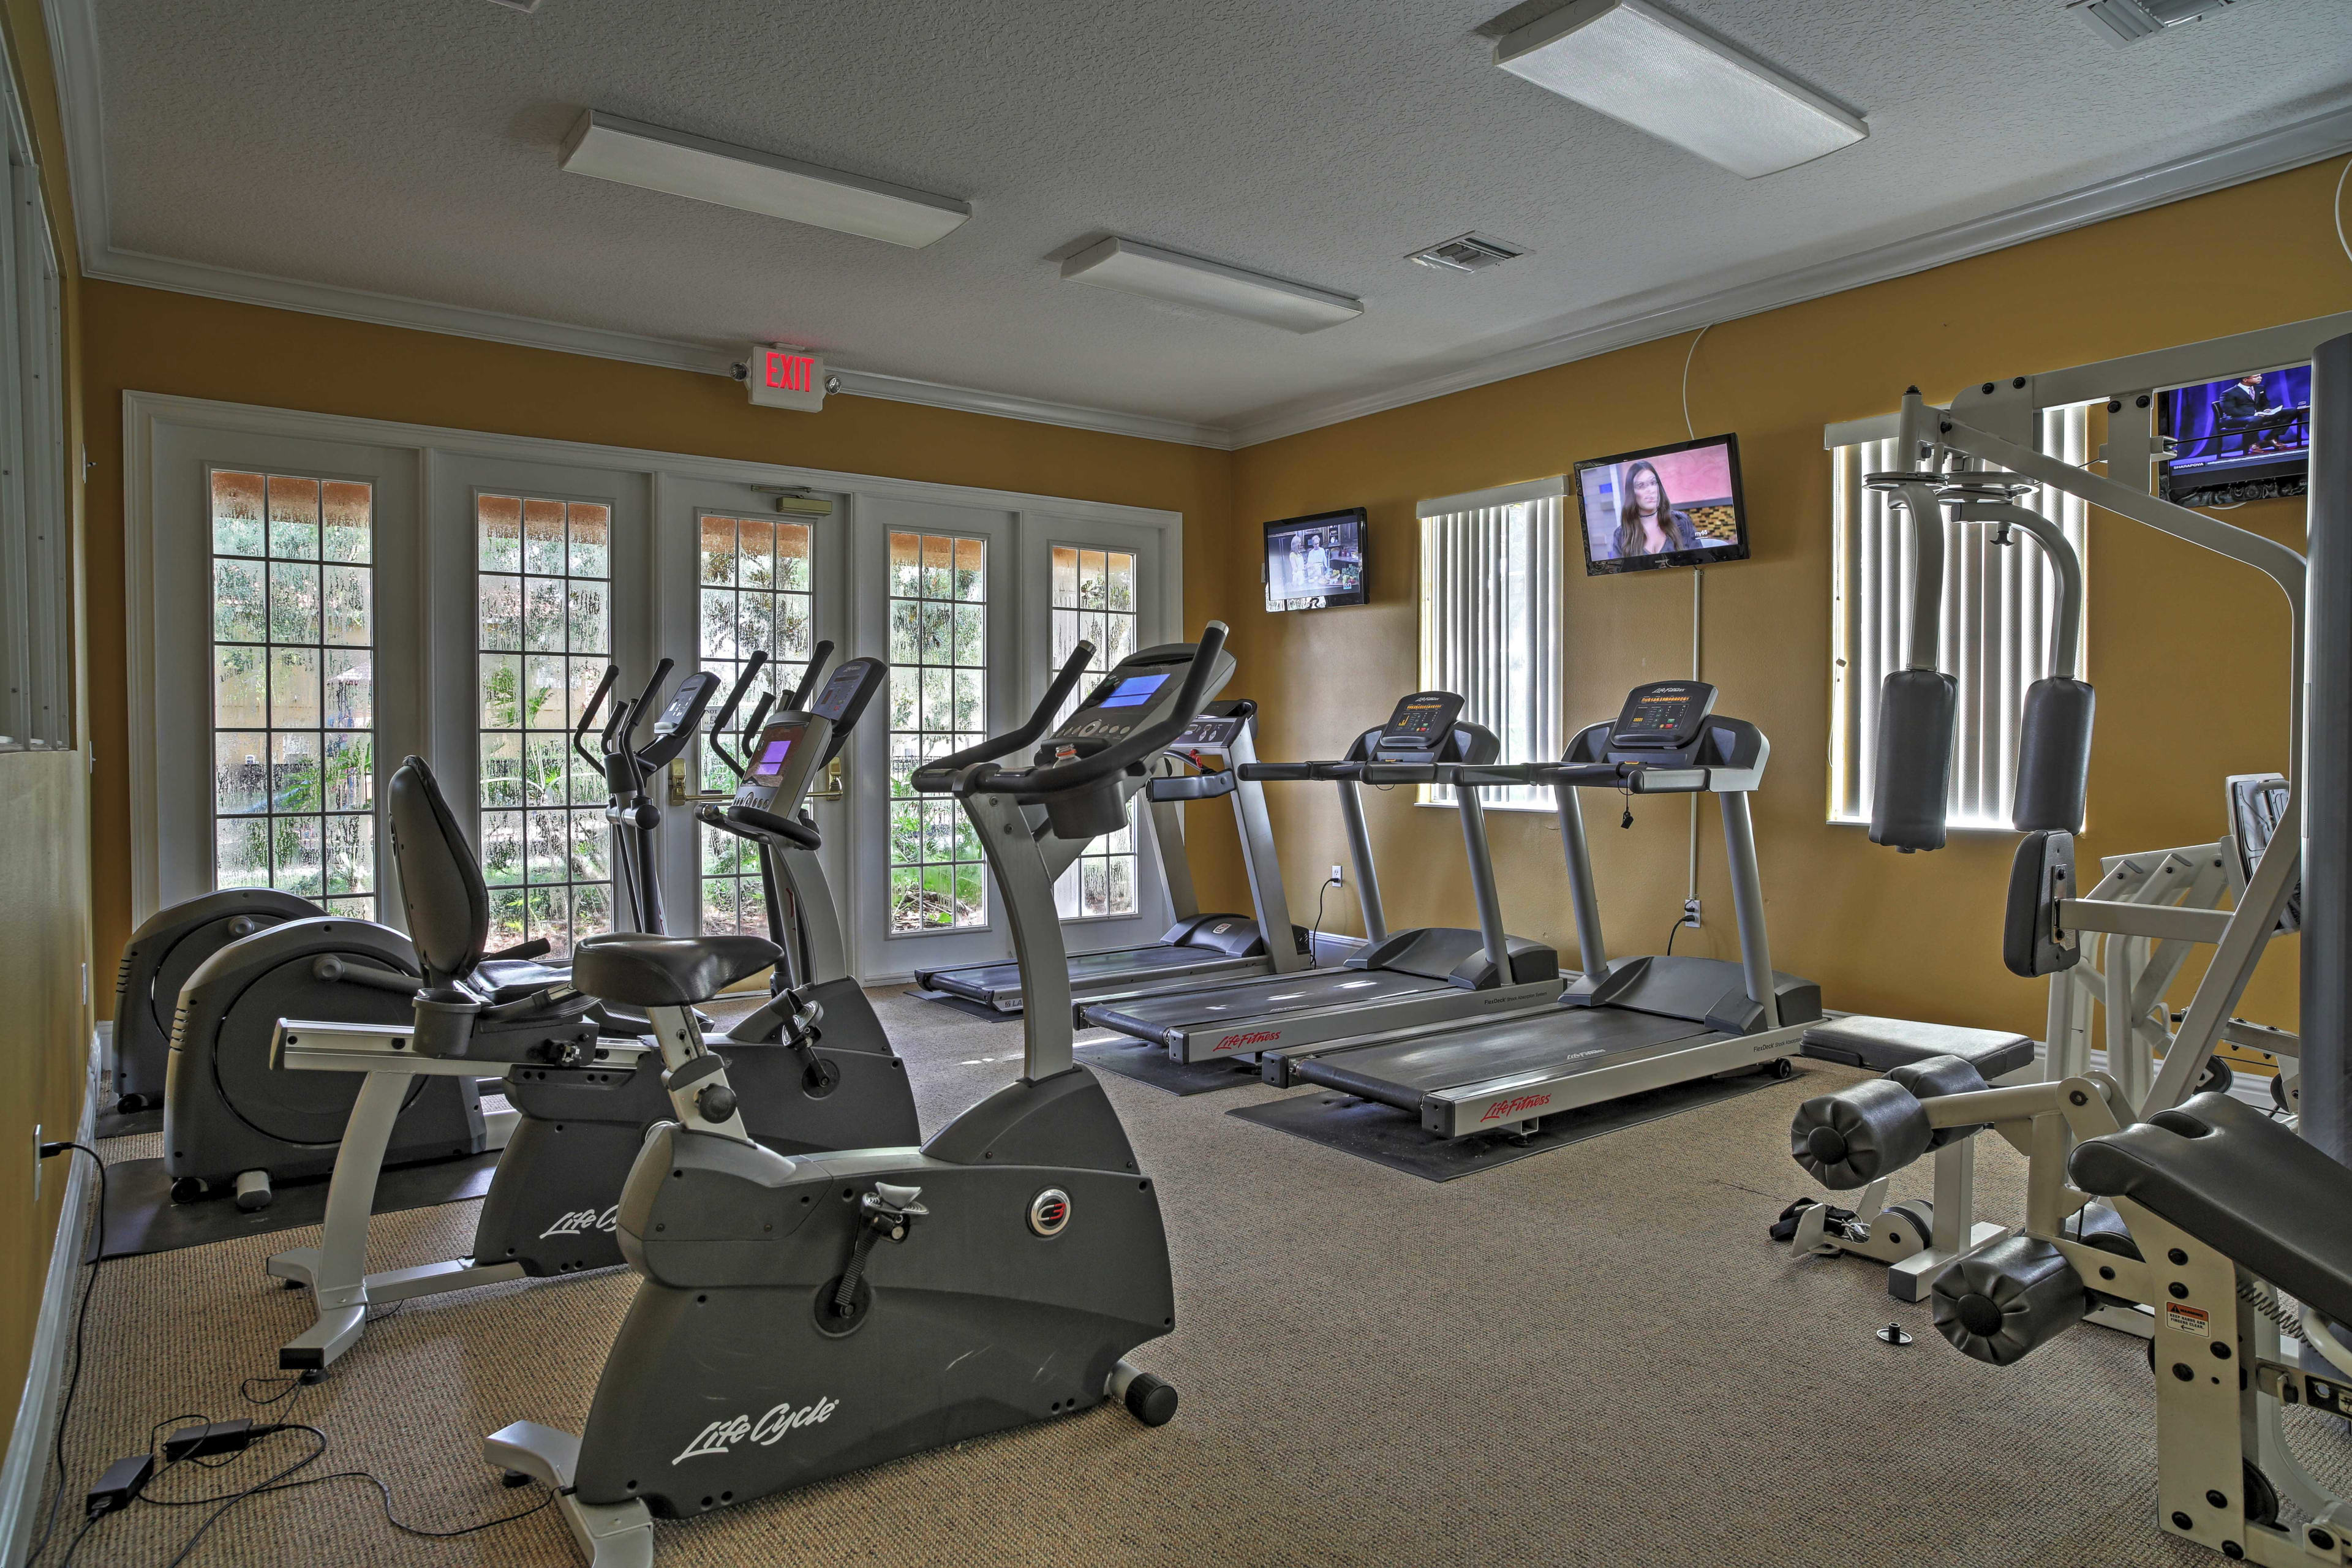 Stay true to your workout routine in the community fitness center.